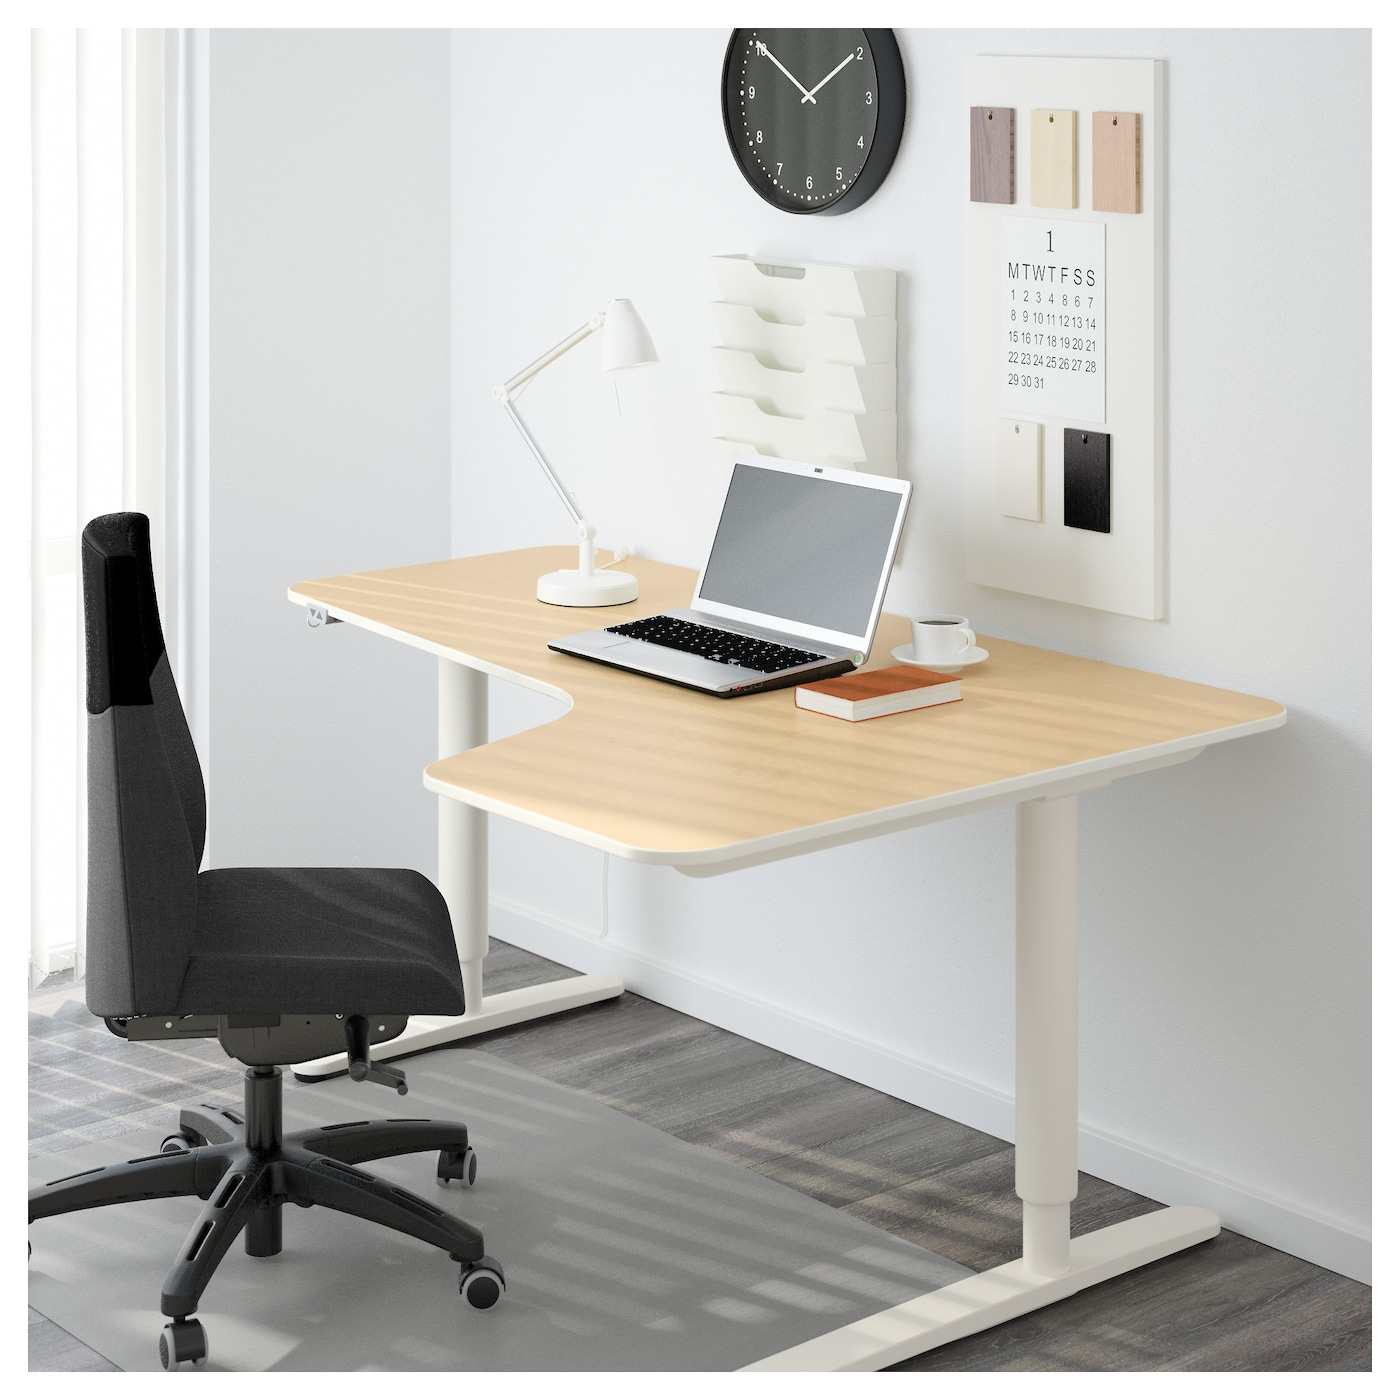 desks black en spr white terms bekant the ikea left cm read brown office about guarantee gb products in year corner desk